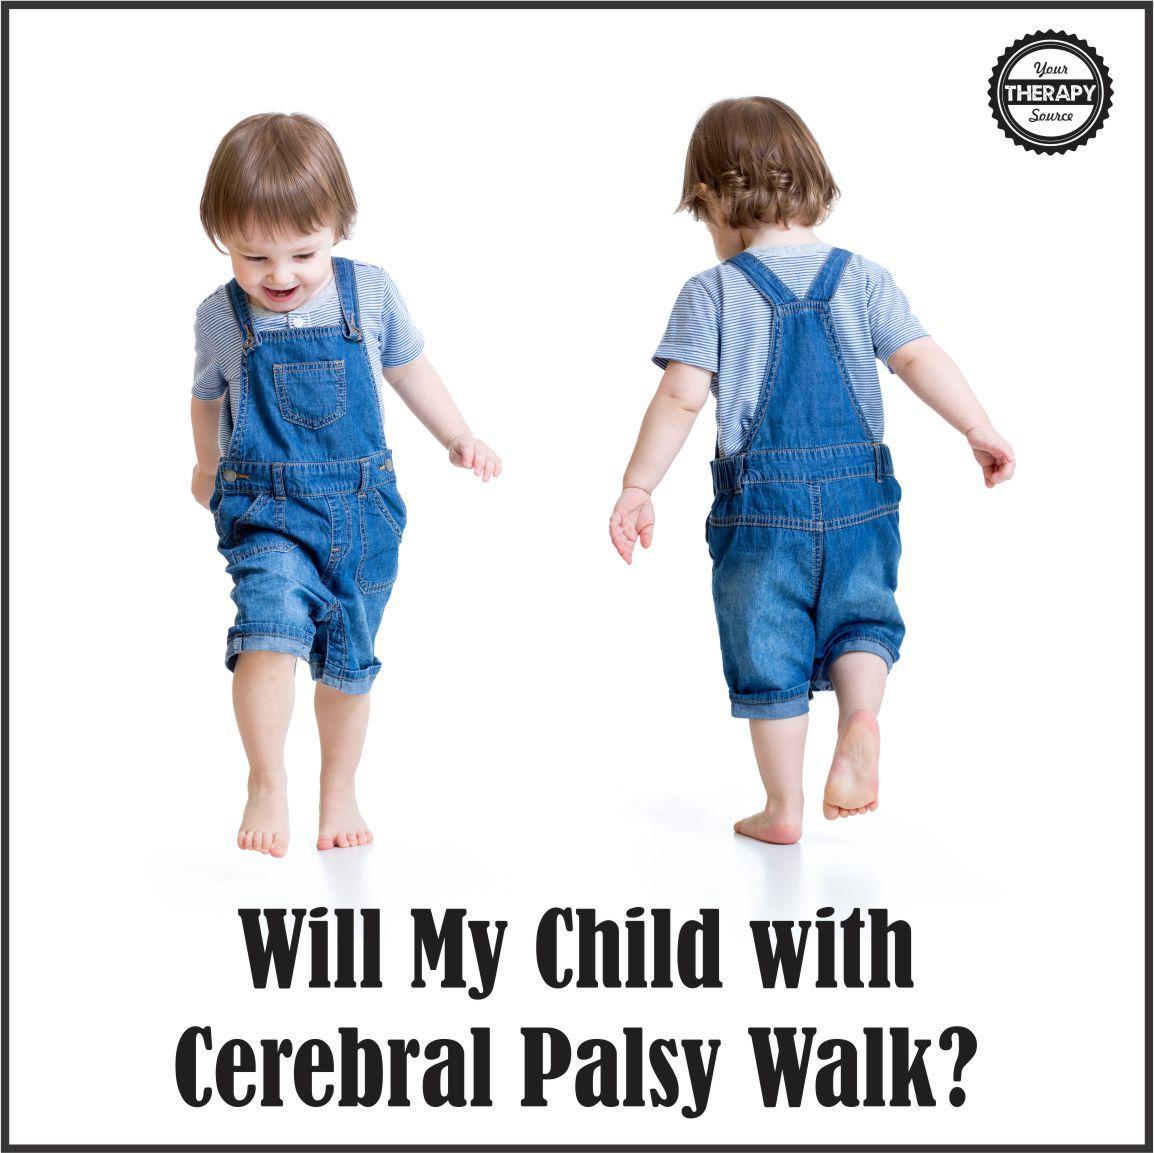 Will my child with cerebral palsy walk? Questions parents ask and research to help therapists respond regarding predicting ambulation.